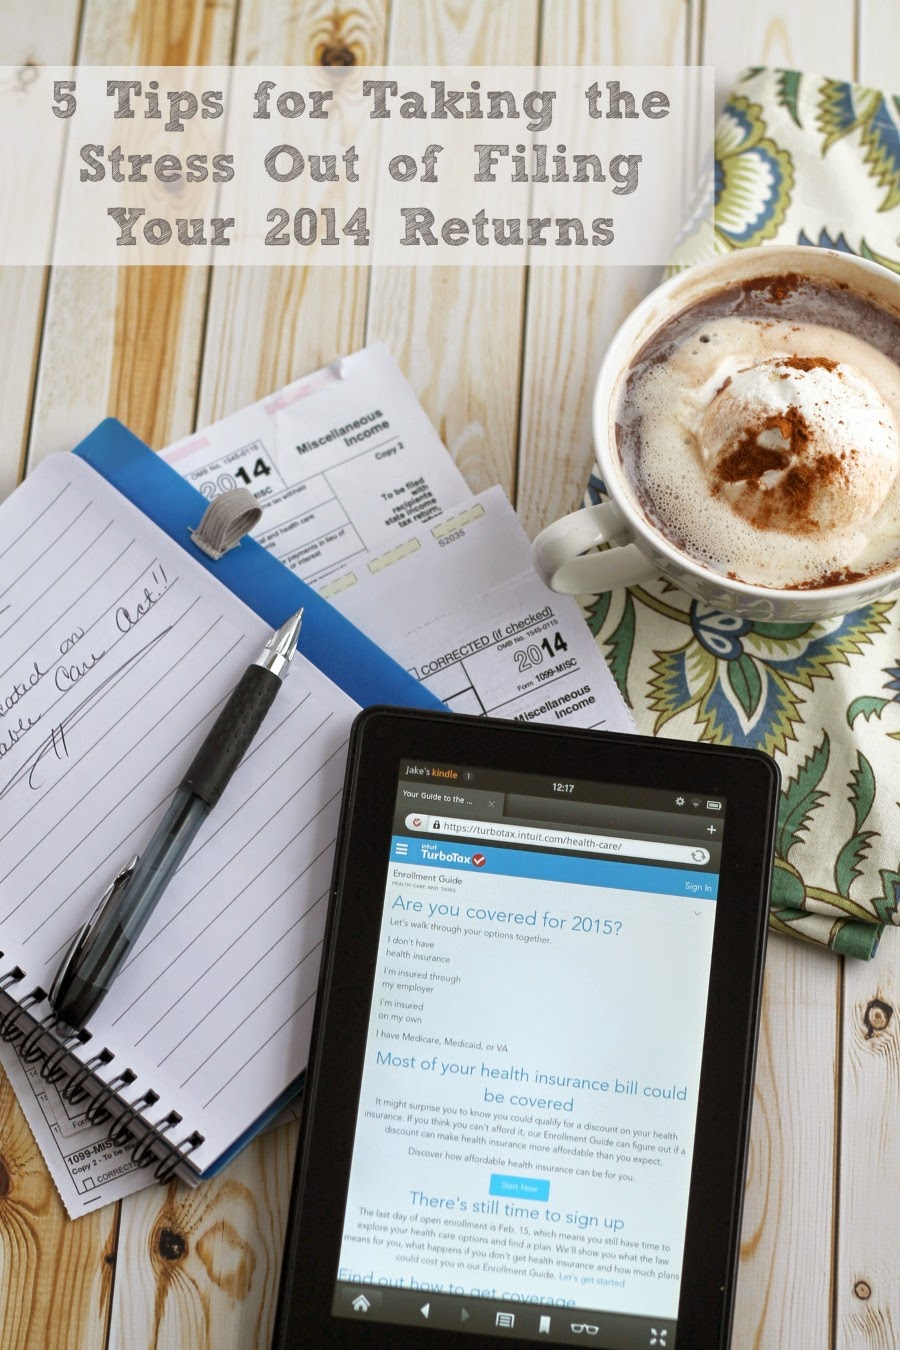 5 Tips for Taking the Stress Out of Filing Your 2014 Tax Returns #TurboTaxACA #PMedia #ad